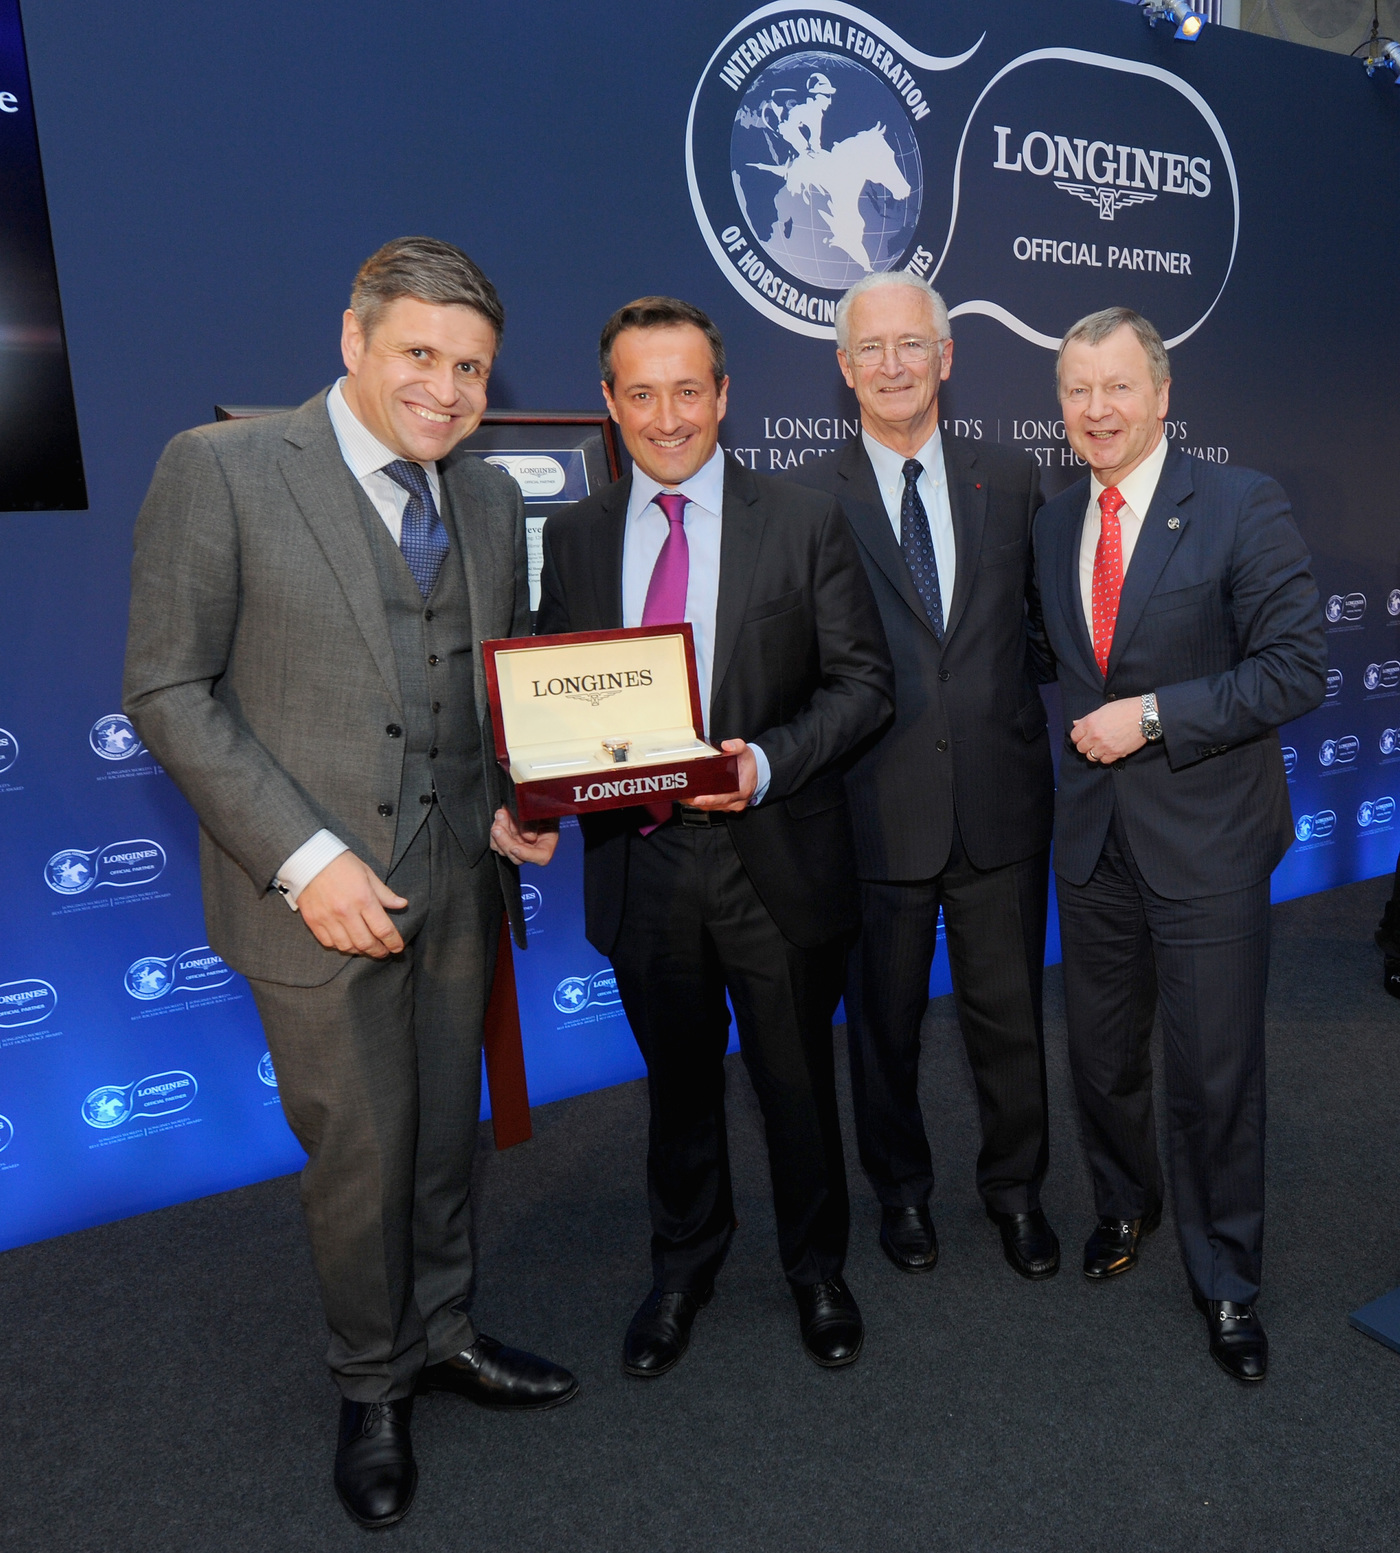 Longines Flat Racing Event: American Pharoah named 2015 Longines World's Best Racehorse, Qatar Prix de l'Arc de Triomphe wins 2015 Longines World's Best Horse Race 4